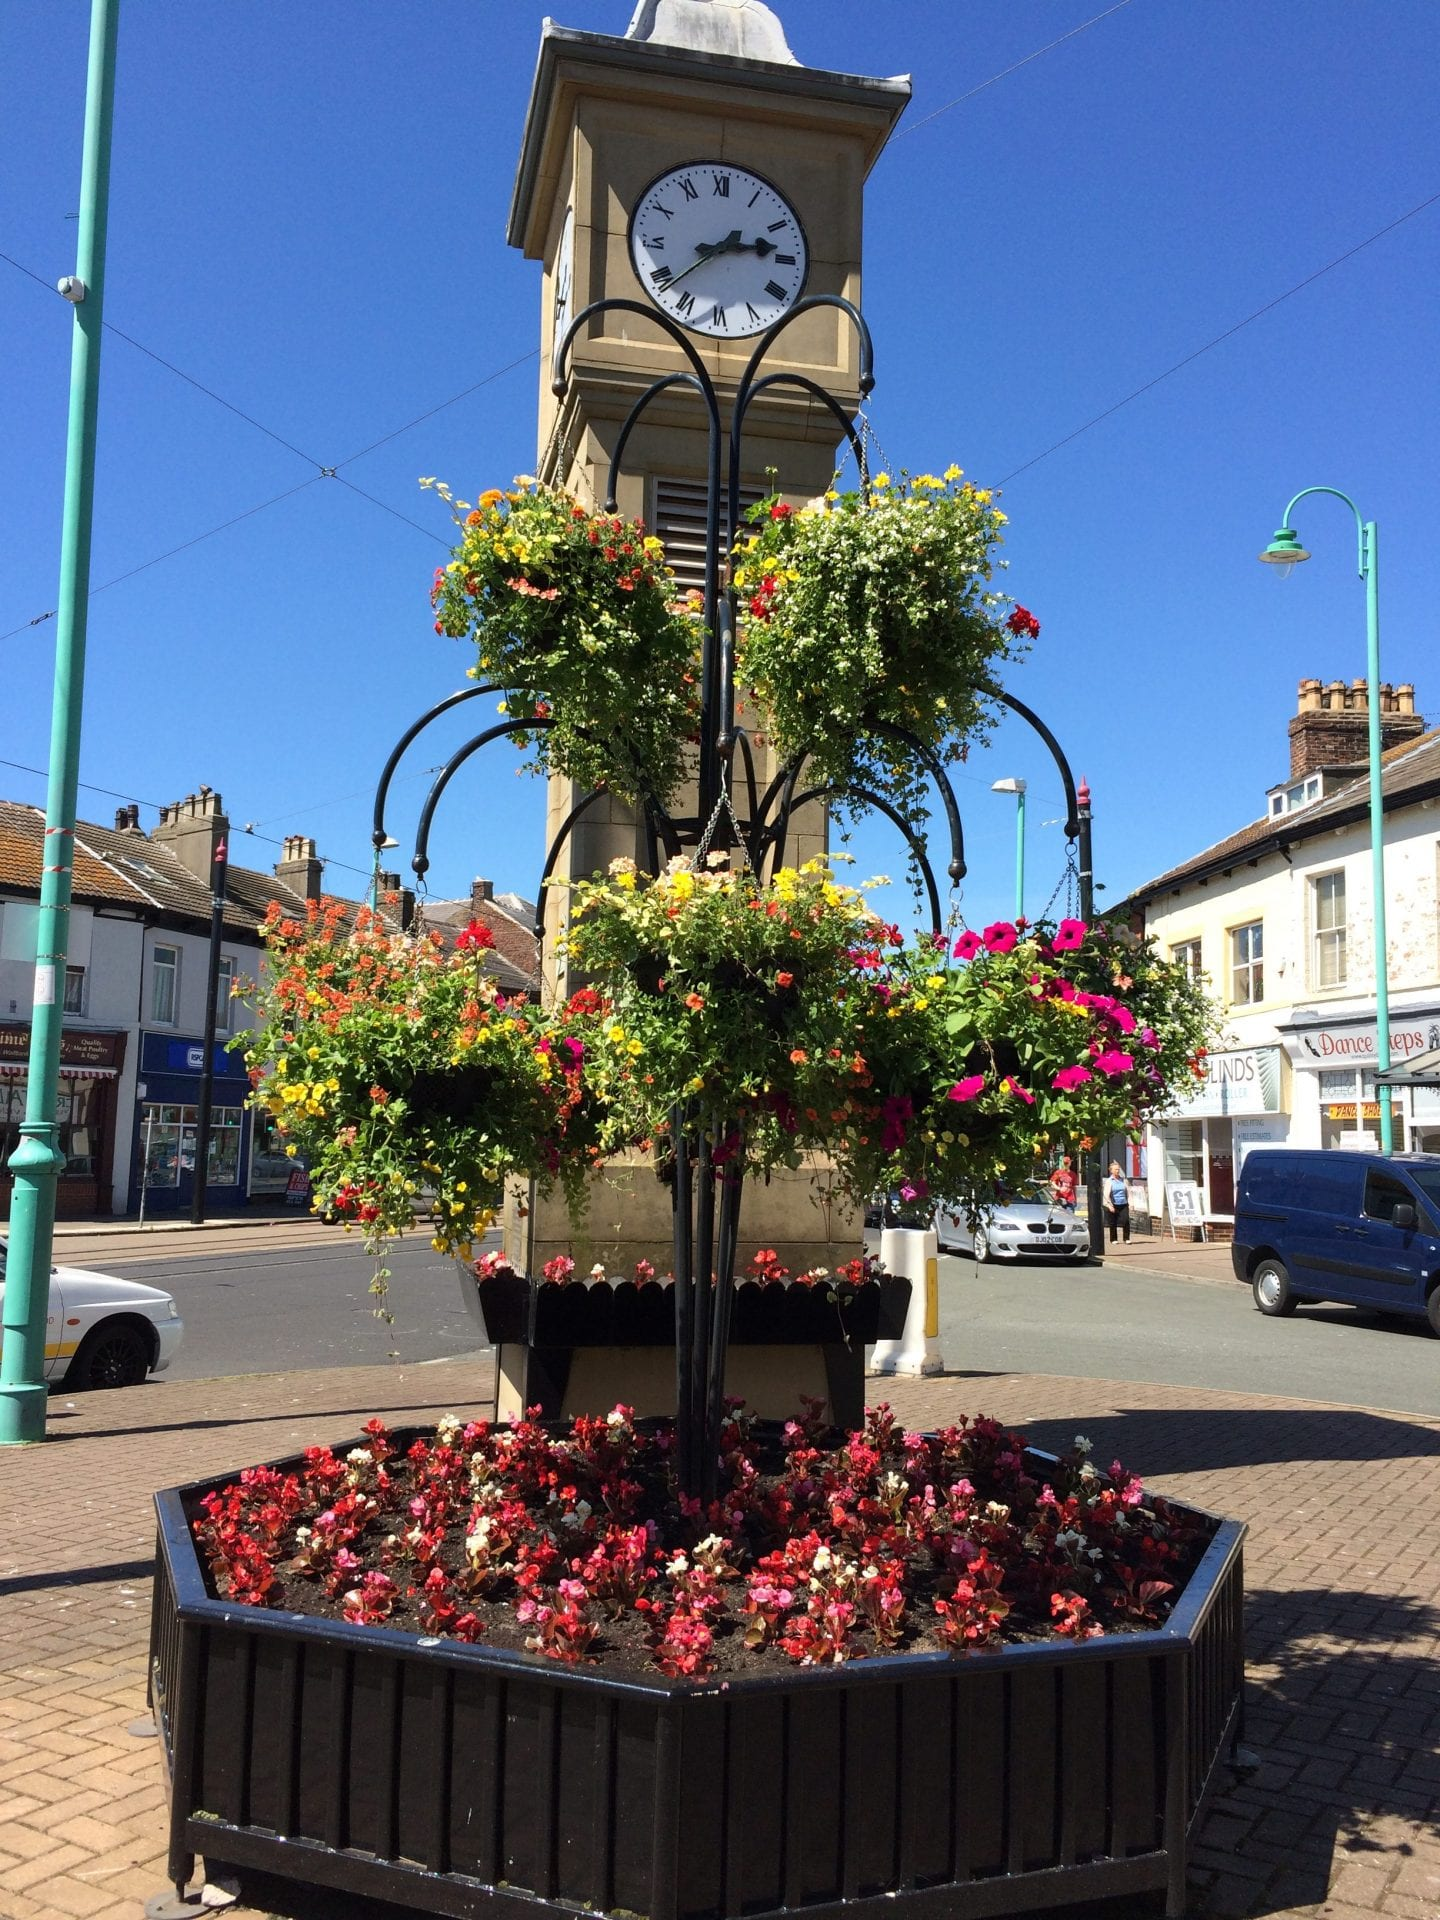 Flower display at the clock near the market